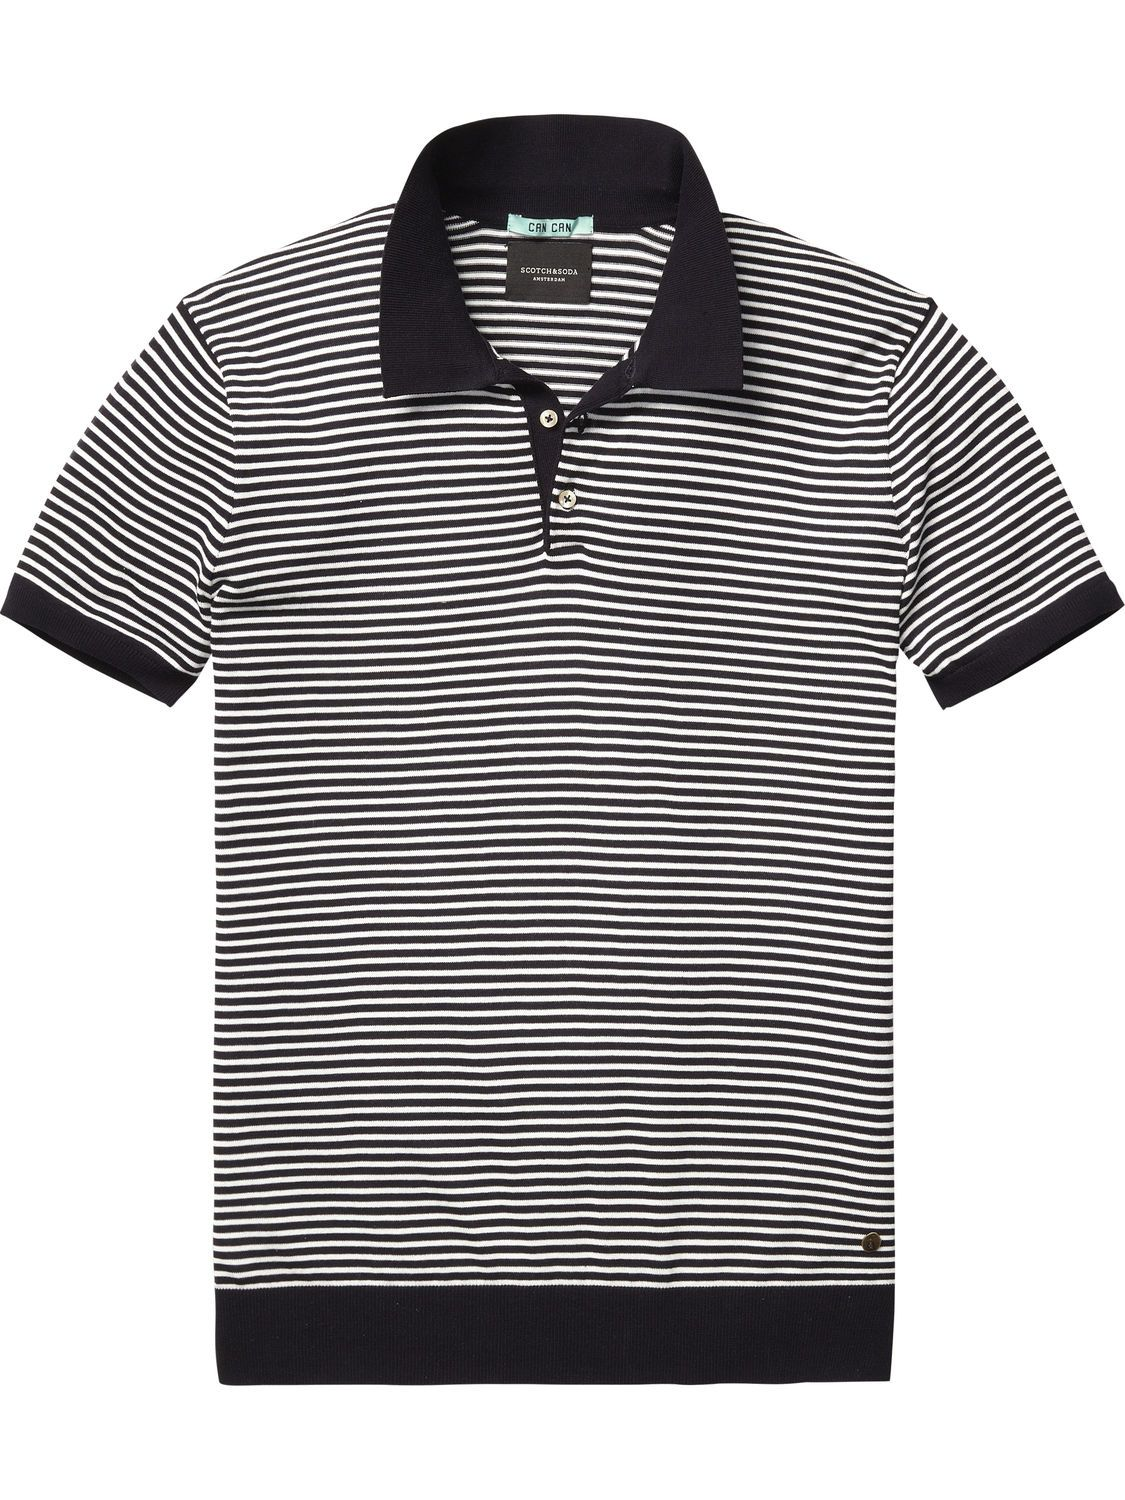 Knitted Polo Shirt |Pullover|Men Clothing at Scotch & Soda